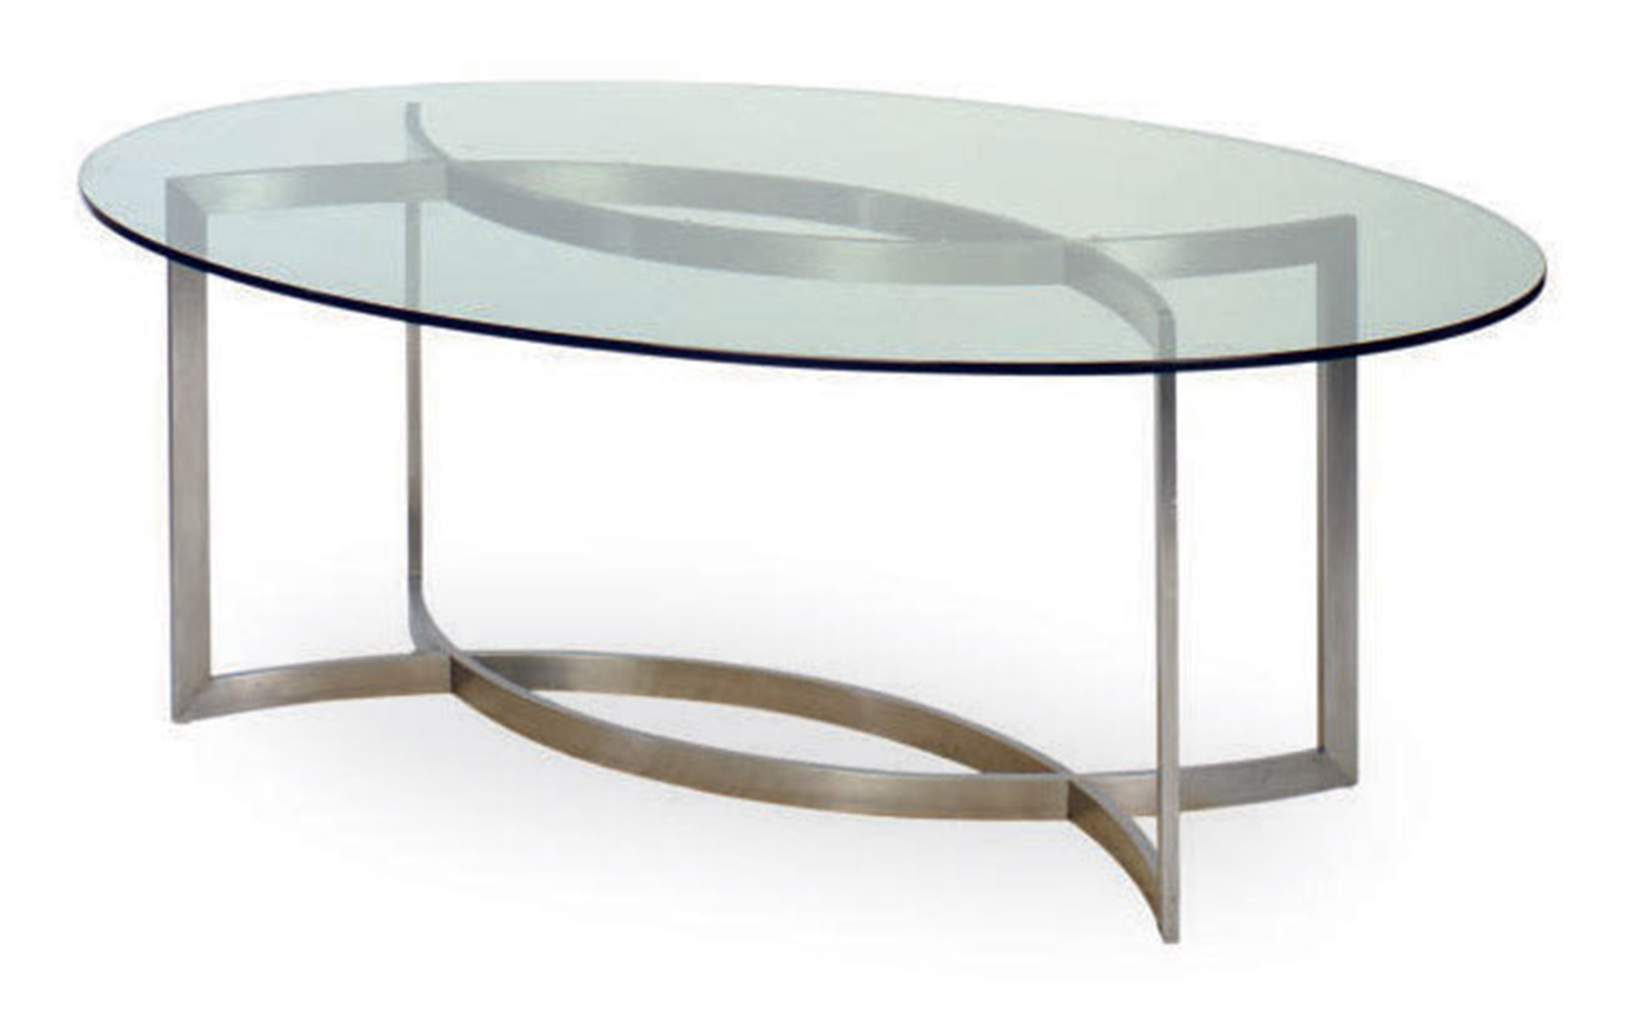 A chromed metal and glass oval dining table designed by for Oval glass dining table